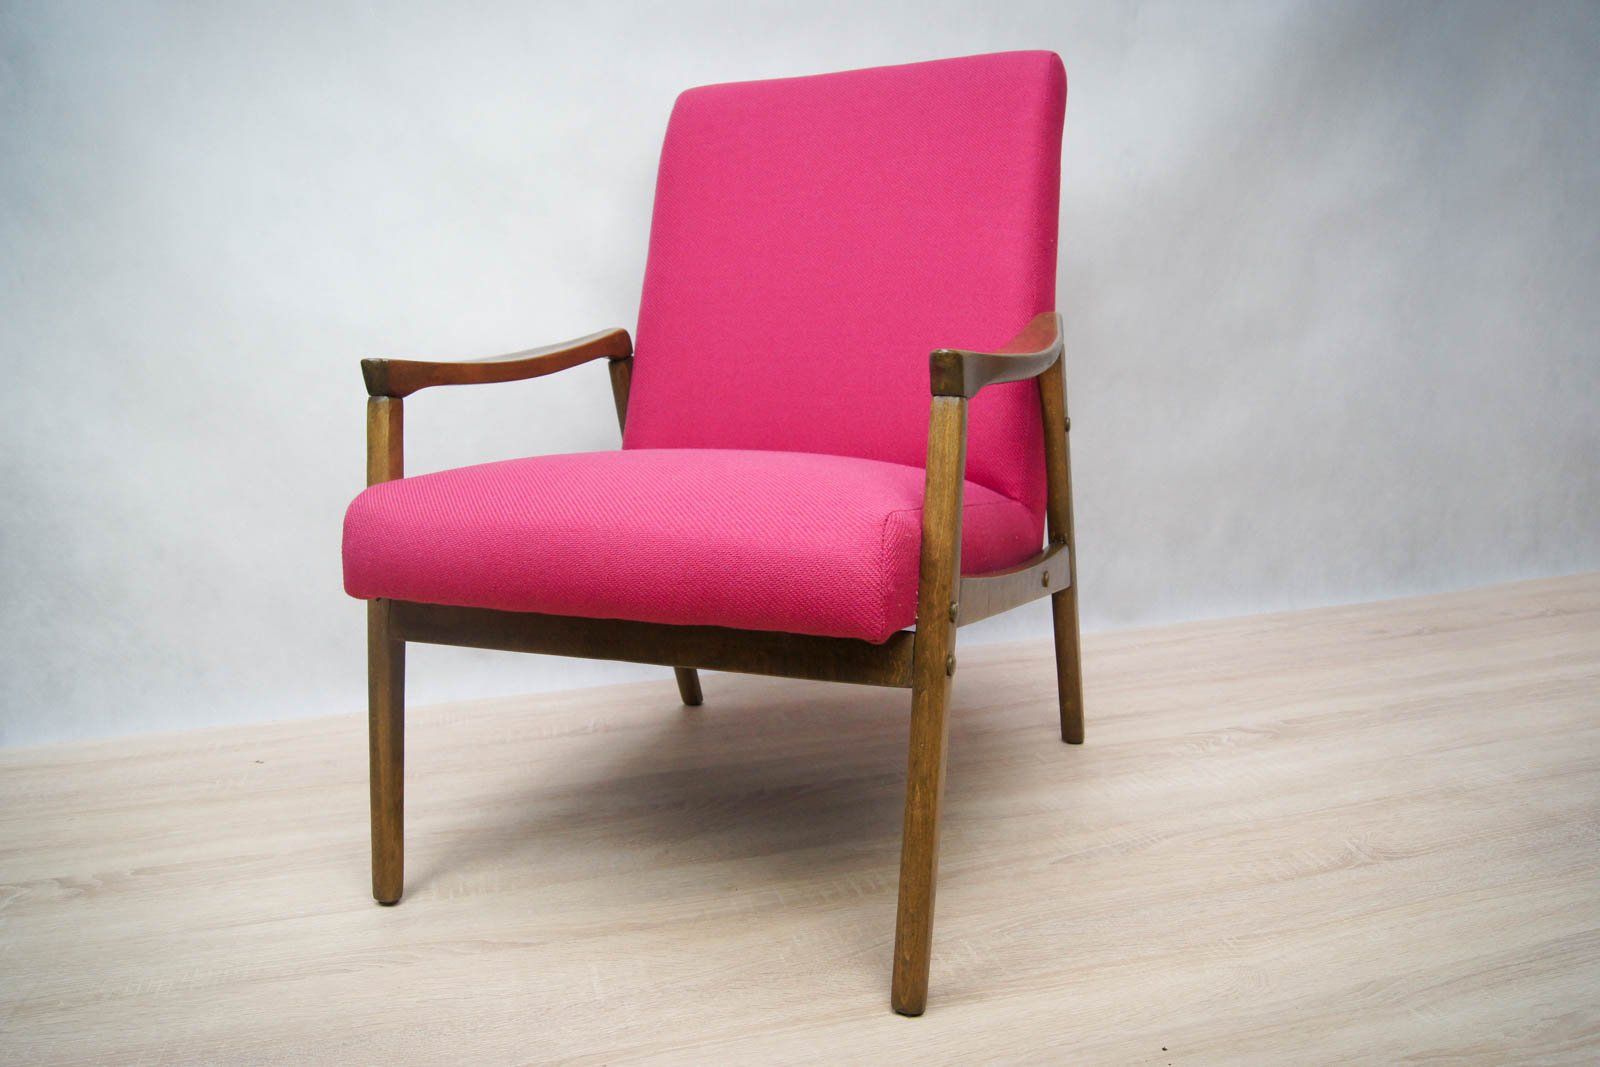 Czechoslovak armchairs 1960s set of 2 for sale at pamono for 2 armchairs for sale